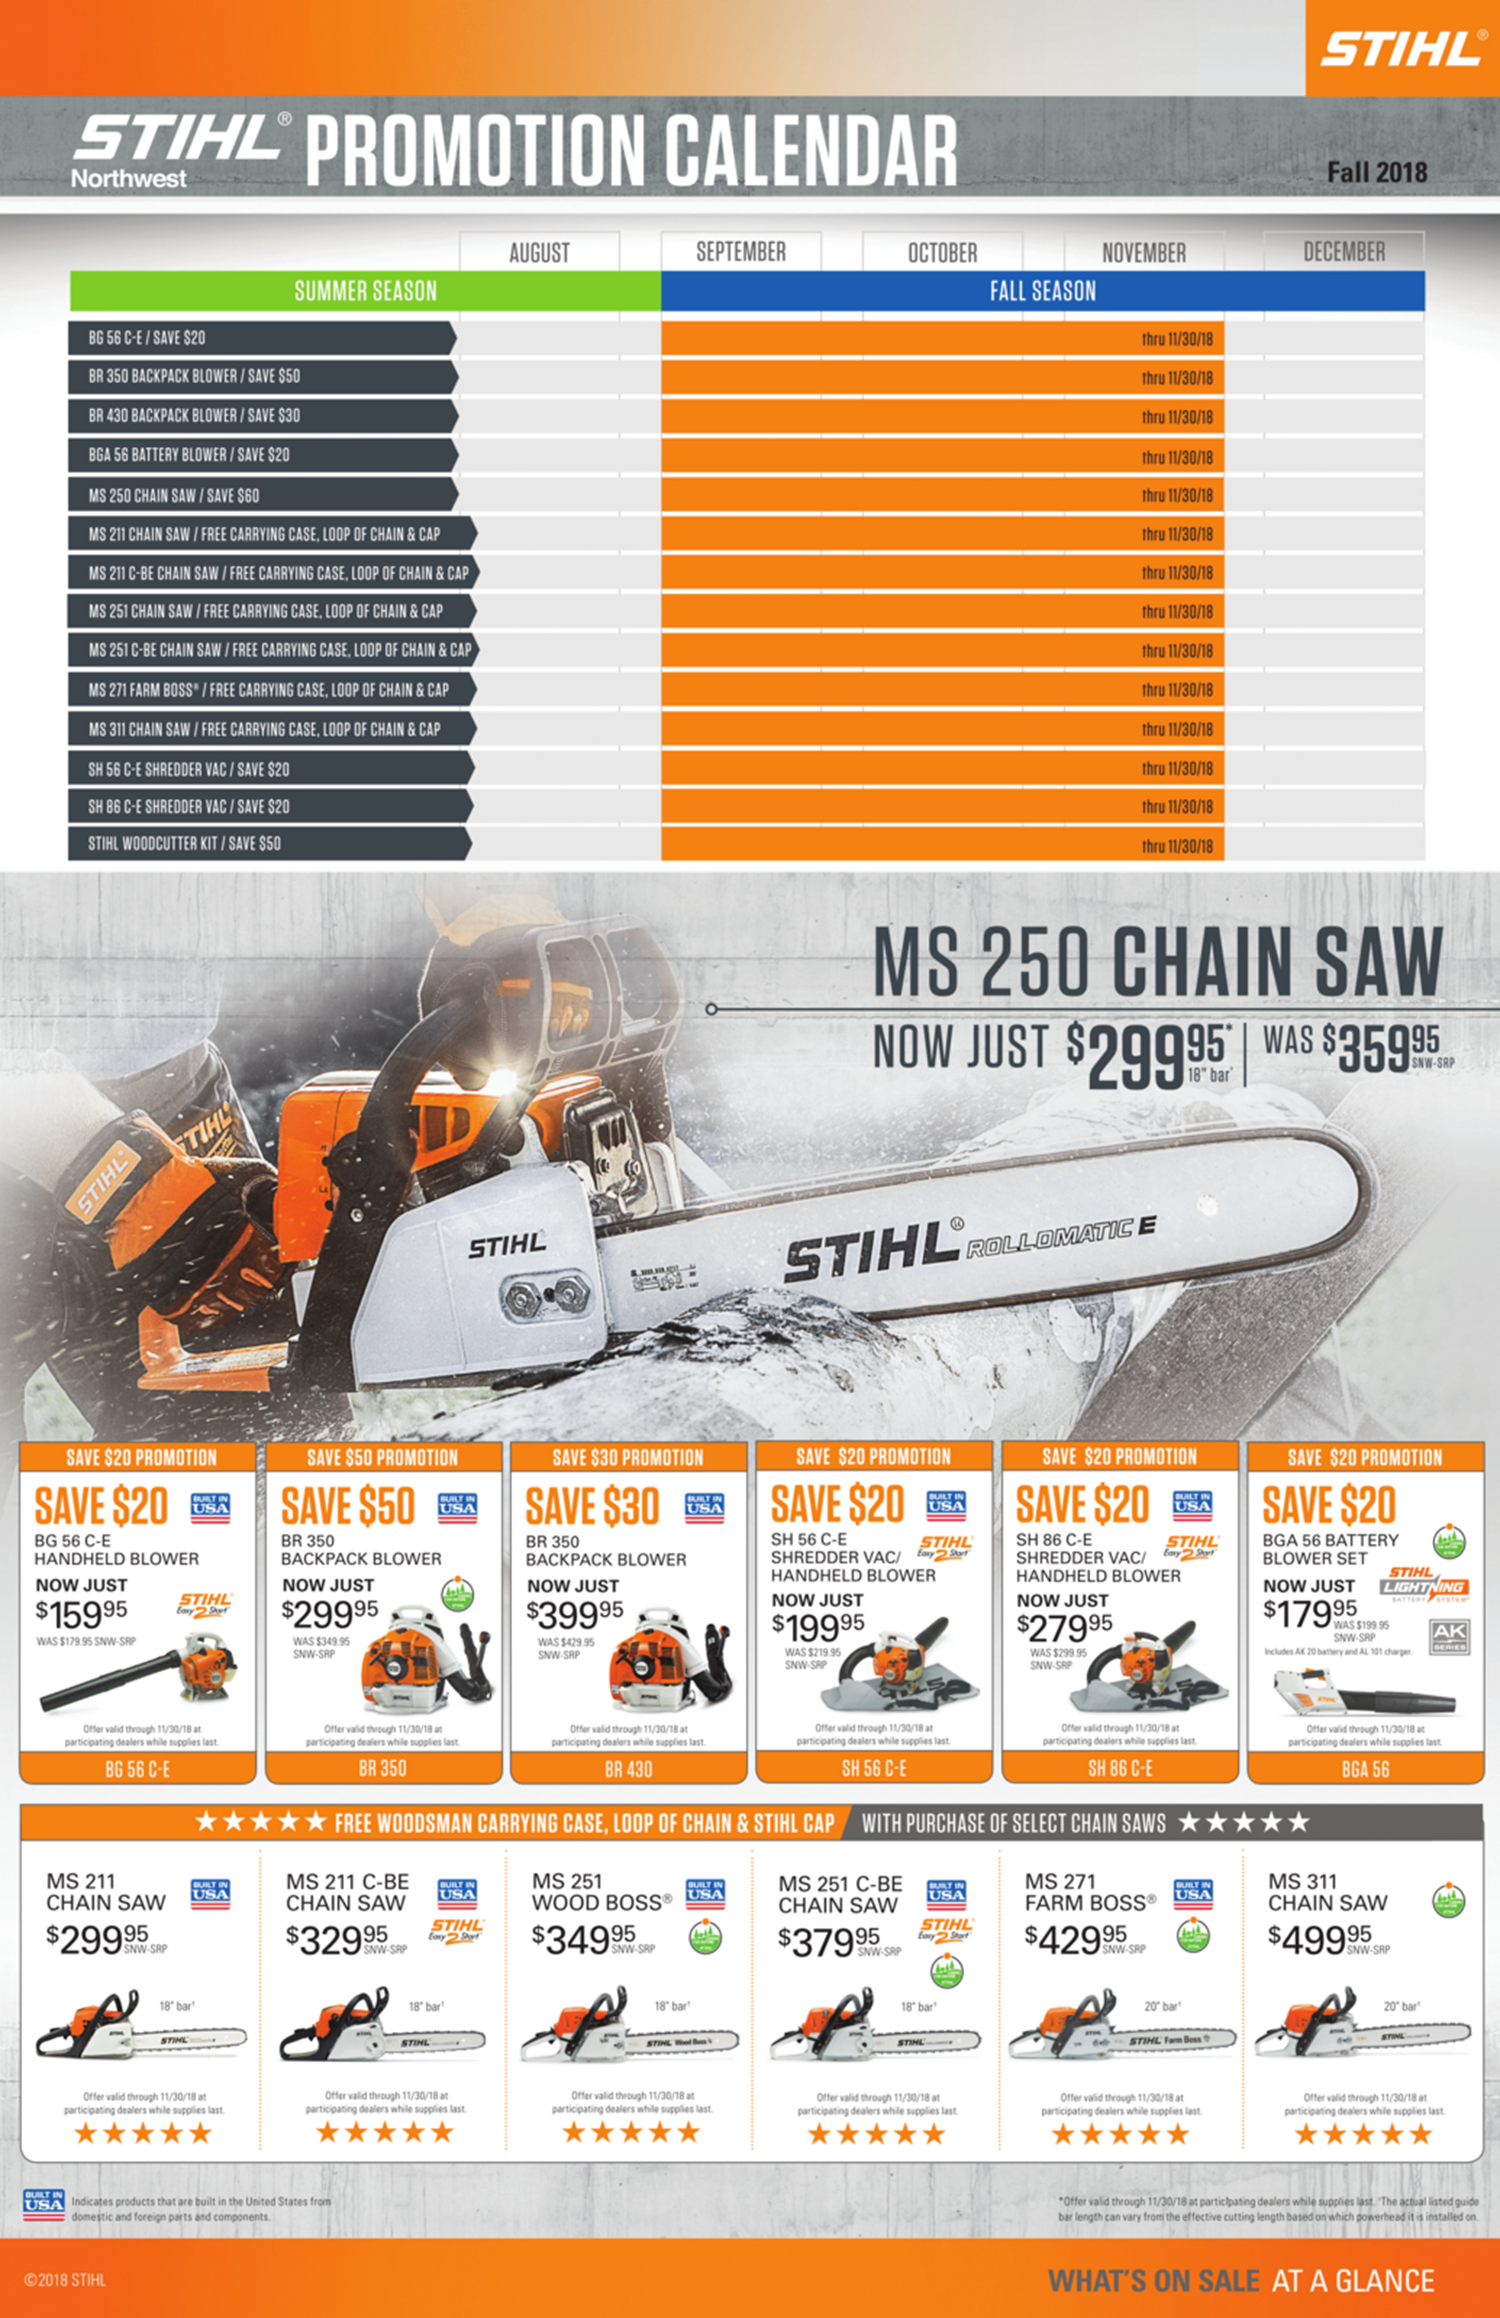 Stihl Fall Marketing Calendar (1)-1